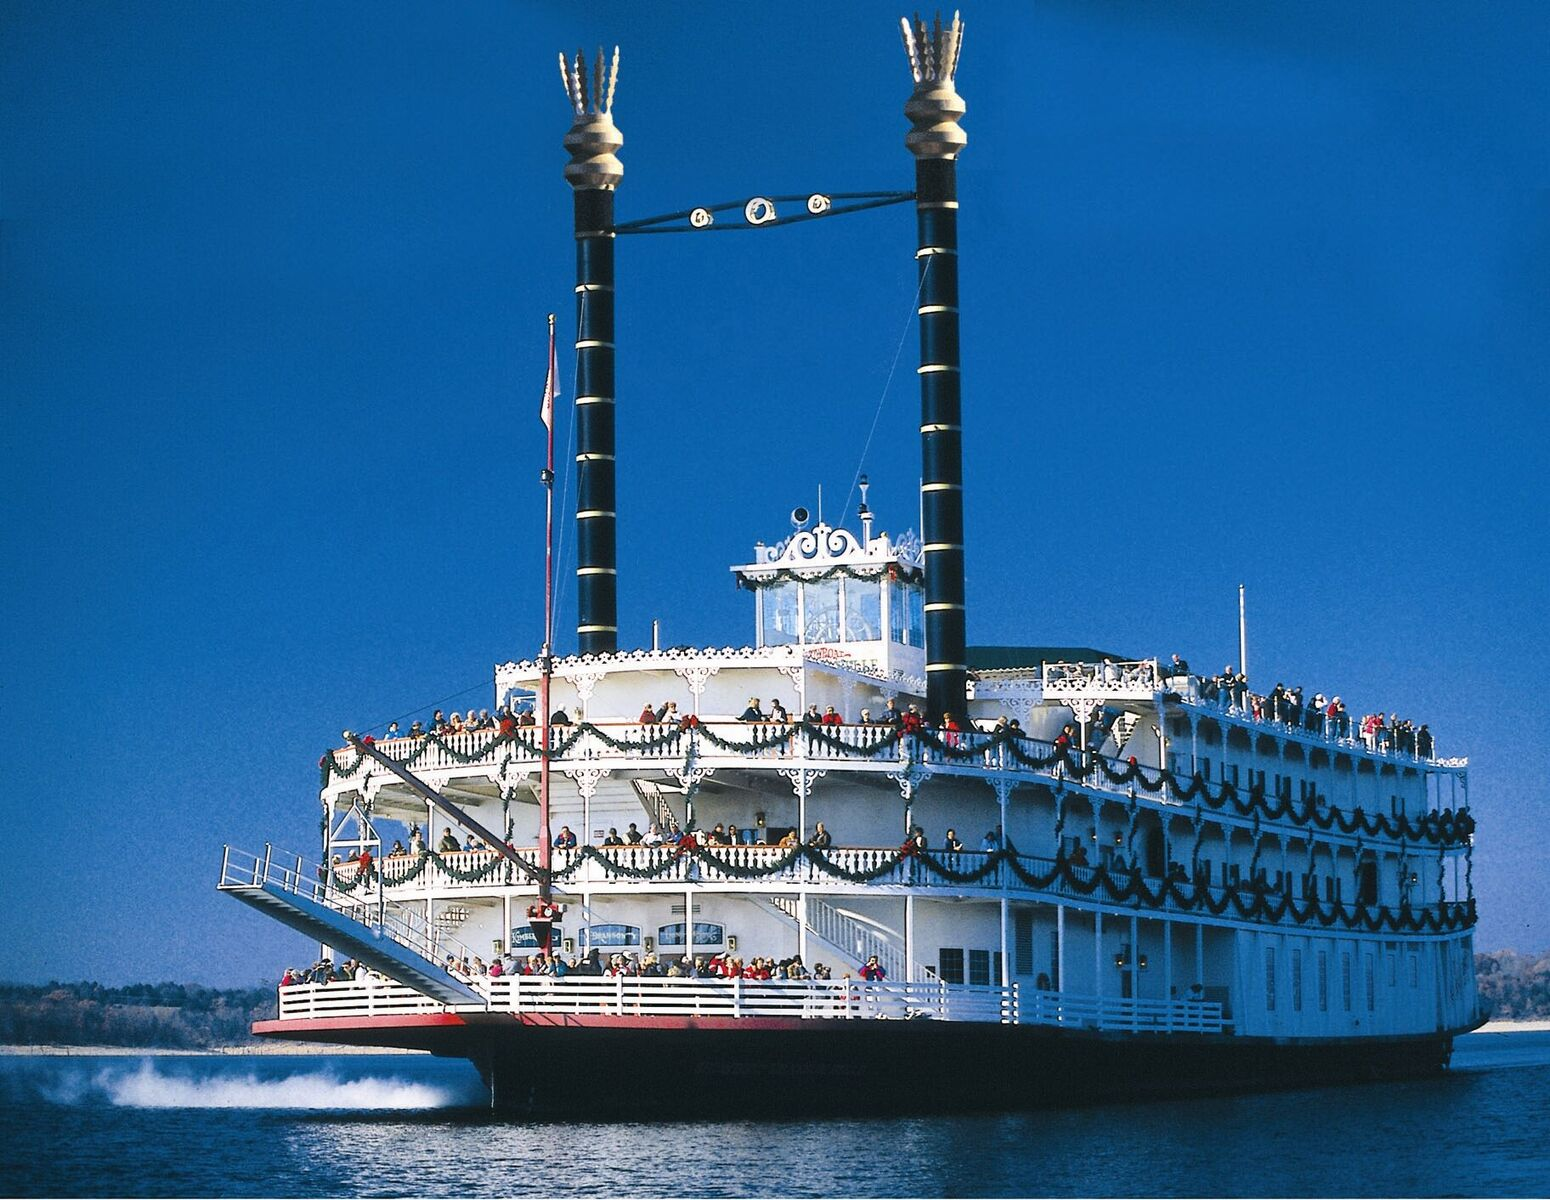 Sail the waters on the Showboat Branson Belle, a 1890s-style paddlewheeler.